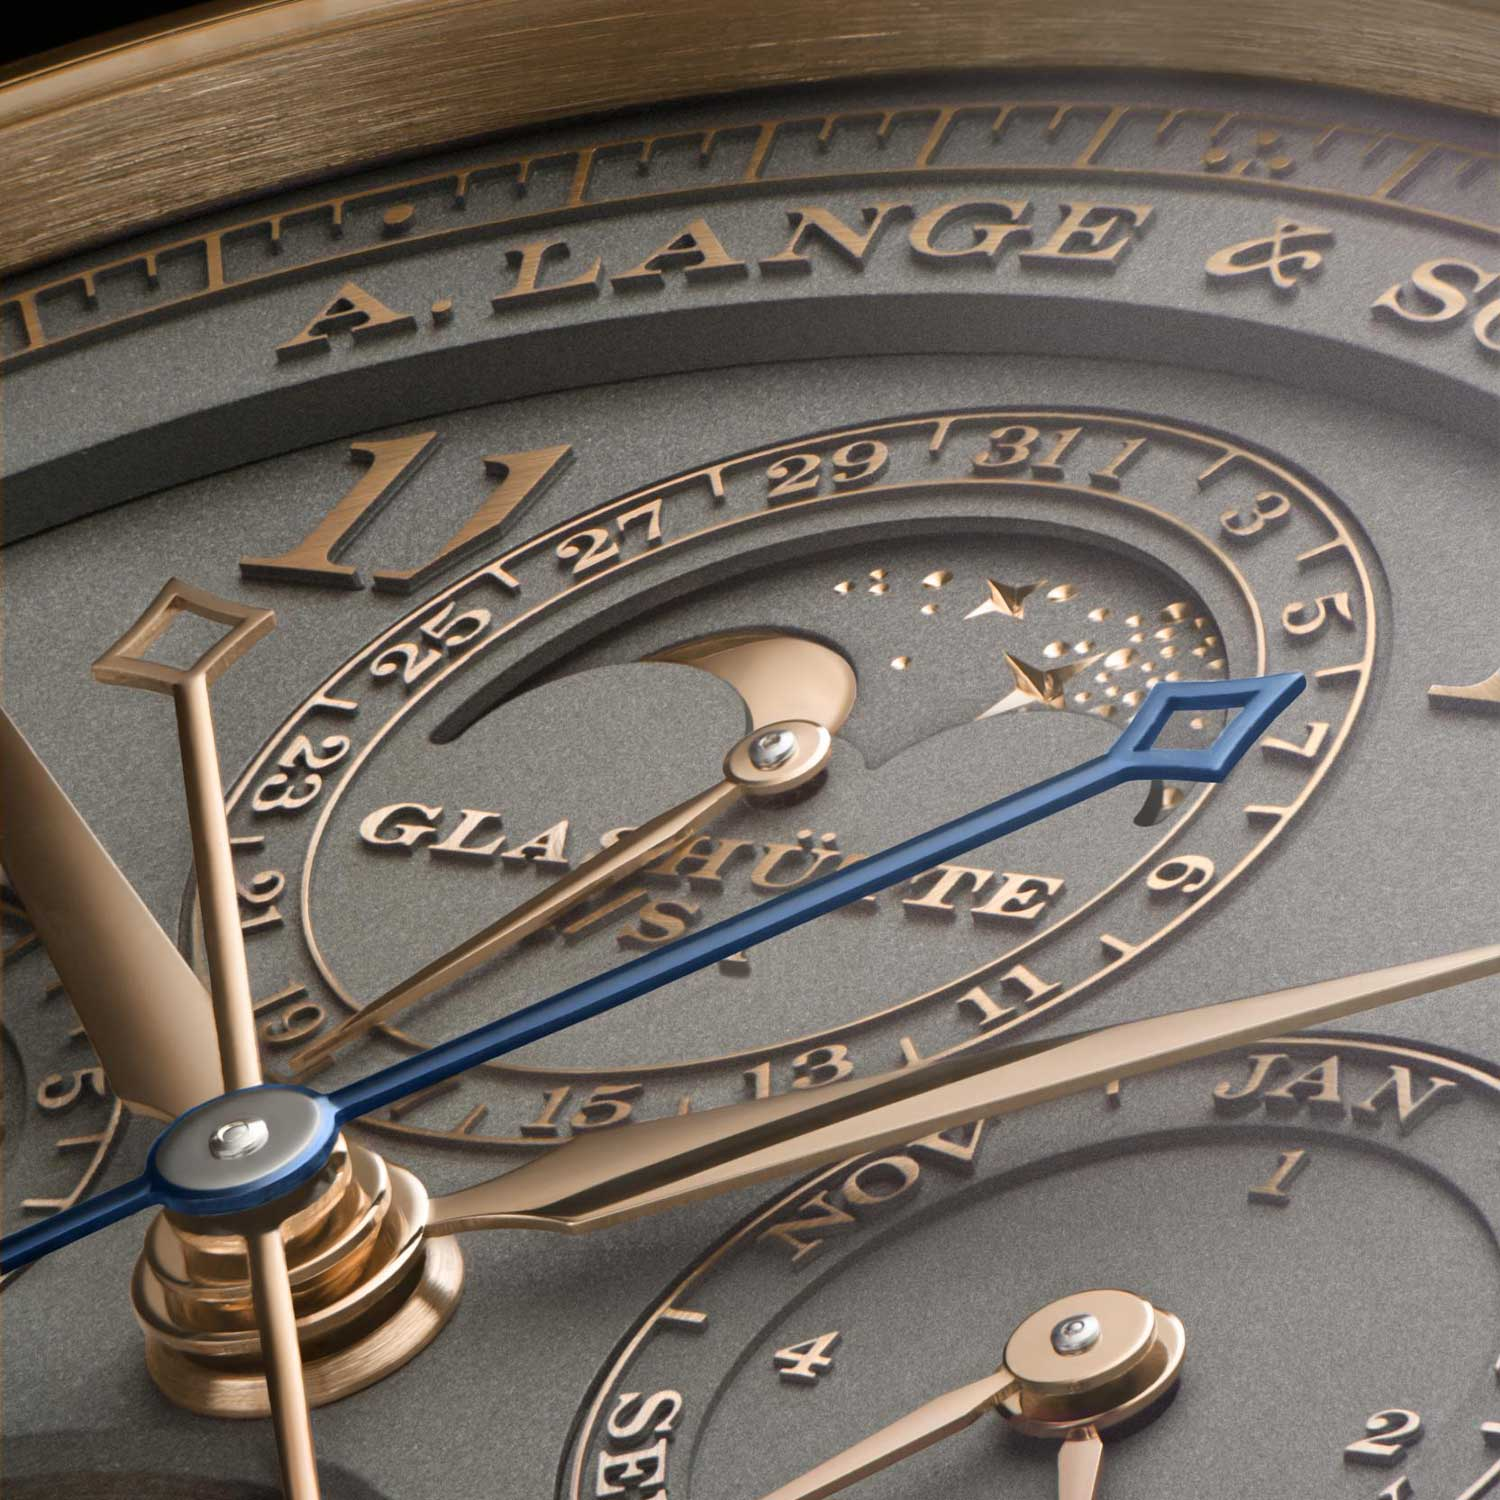 """The numerals and scales of the Tourbograph Perpetual Honeygold """"Homage to F. A. Lange"""" raised, rather than applied, from the solid Honeygold dial"""